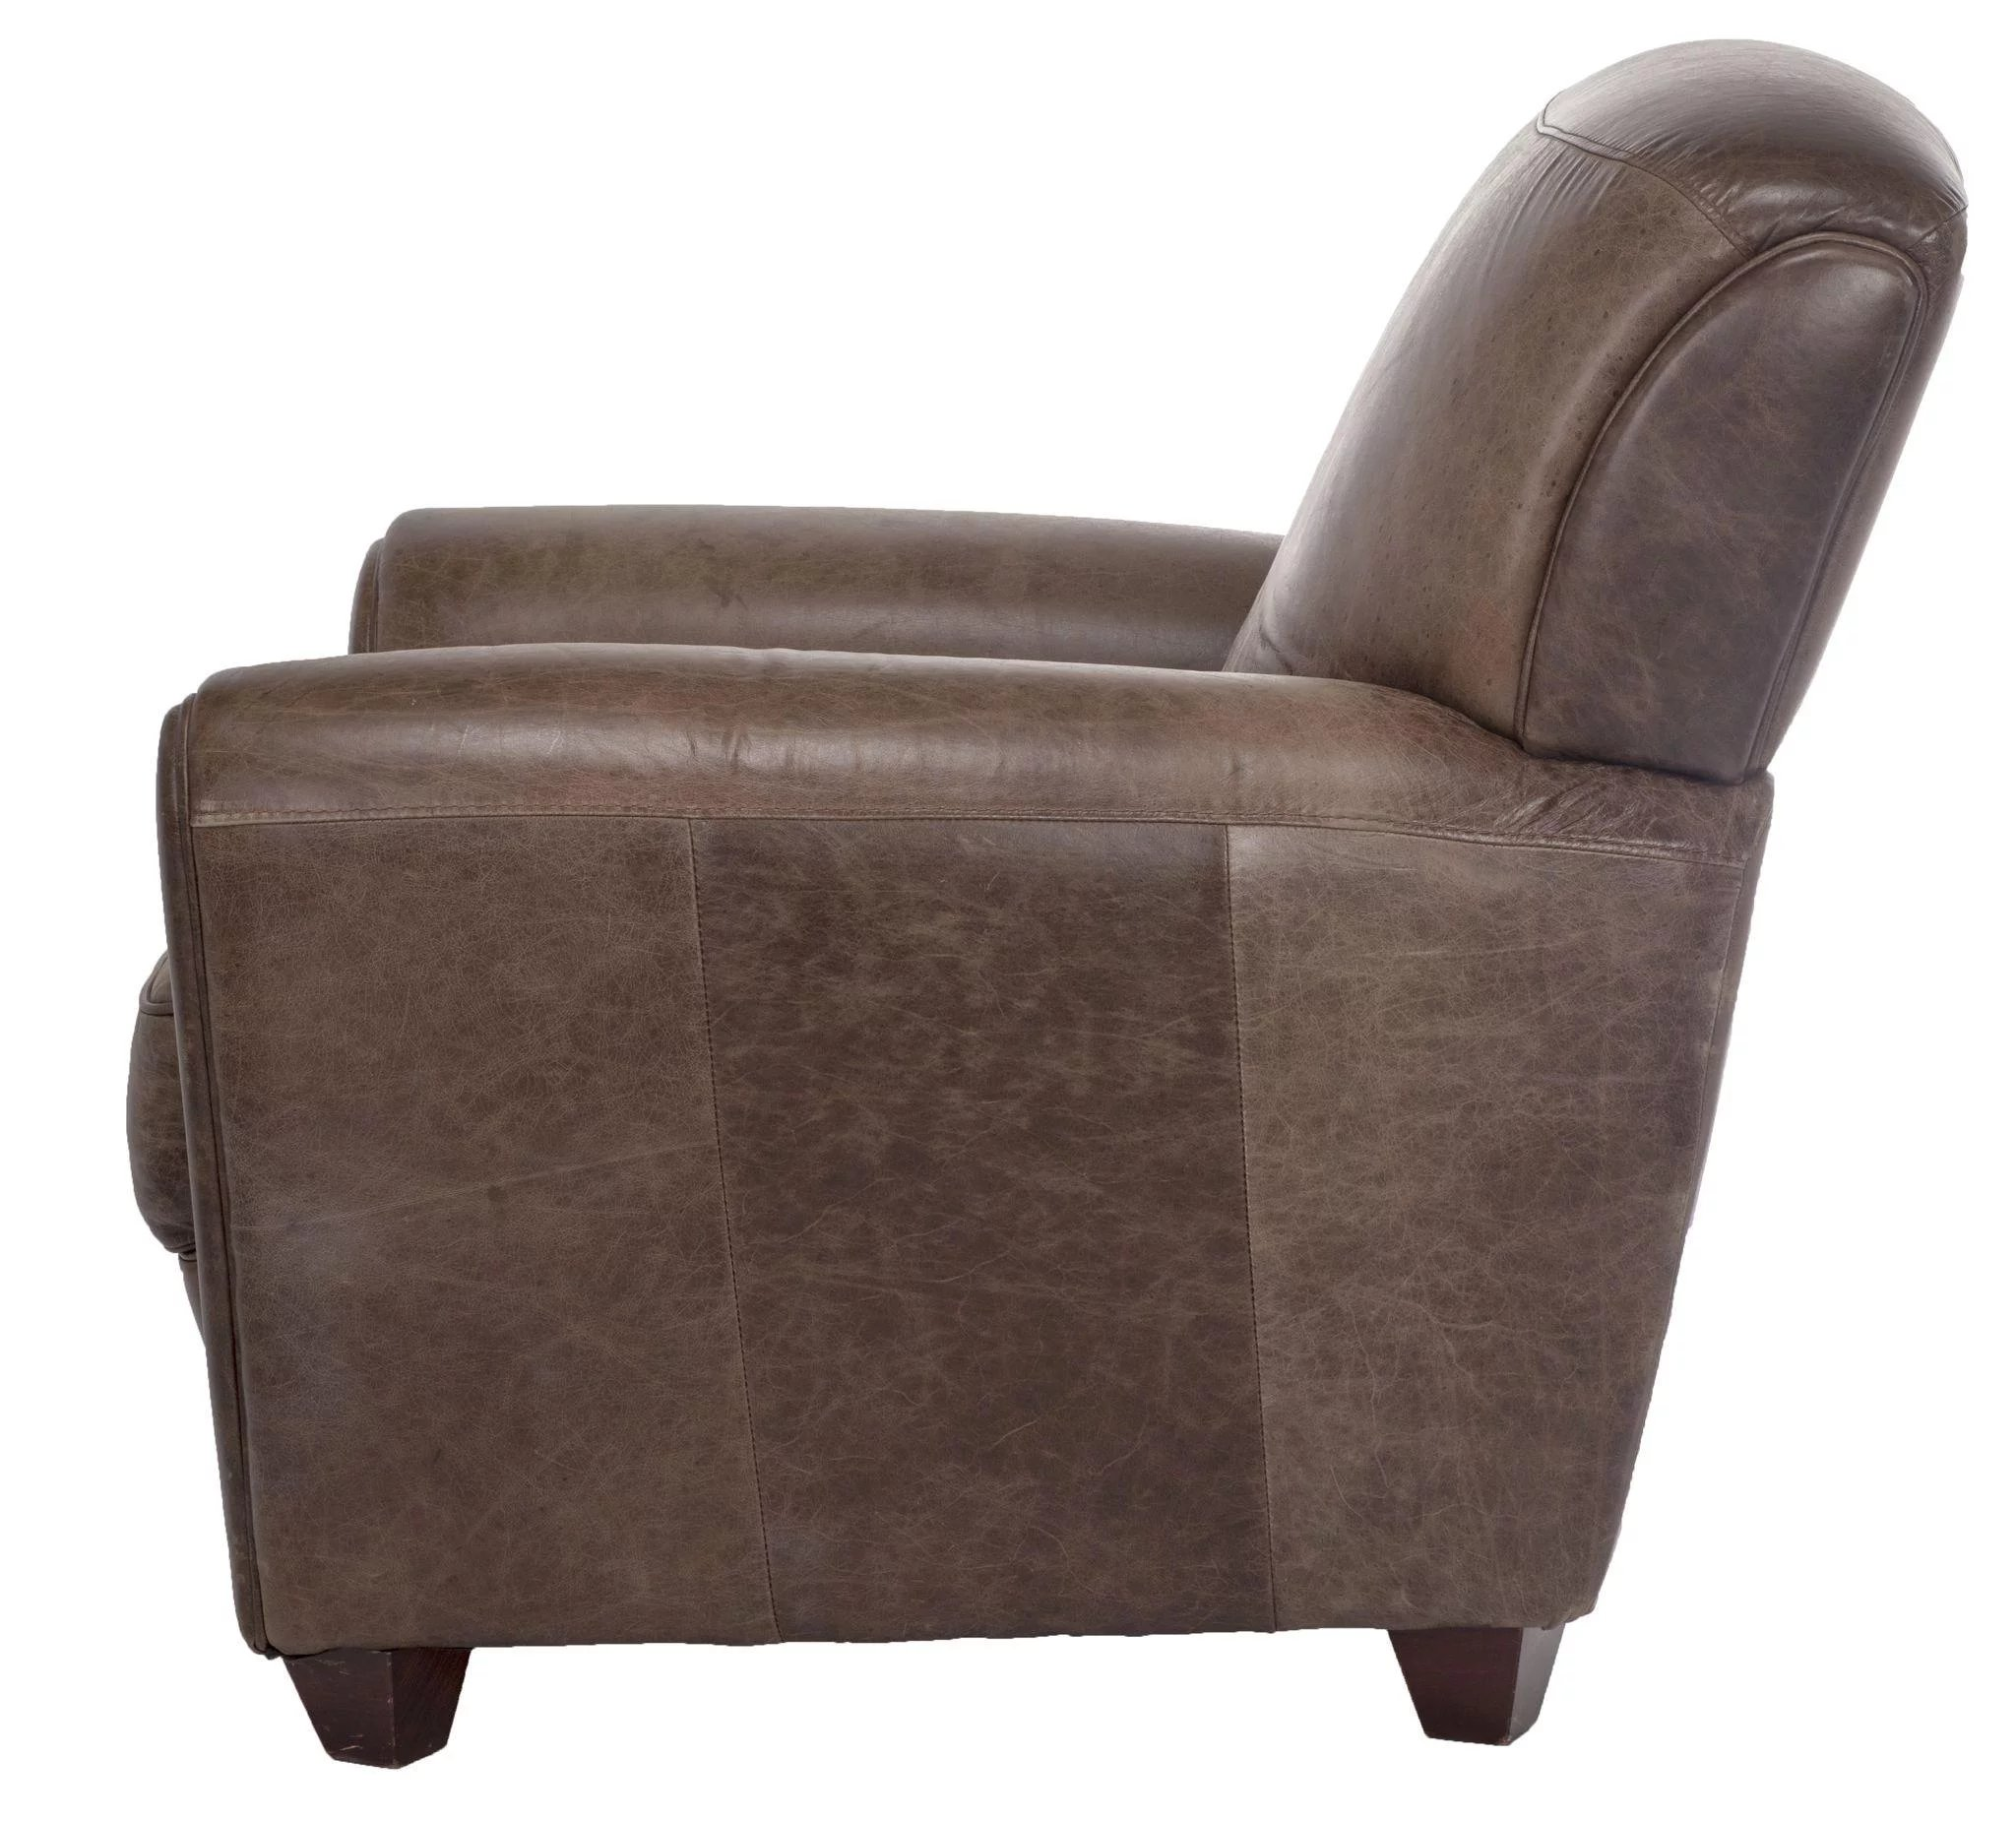 Superieur Olive Green Leather Club Chair. Click To Expand